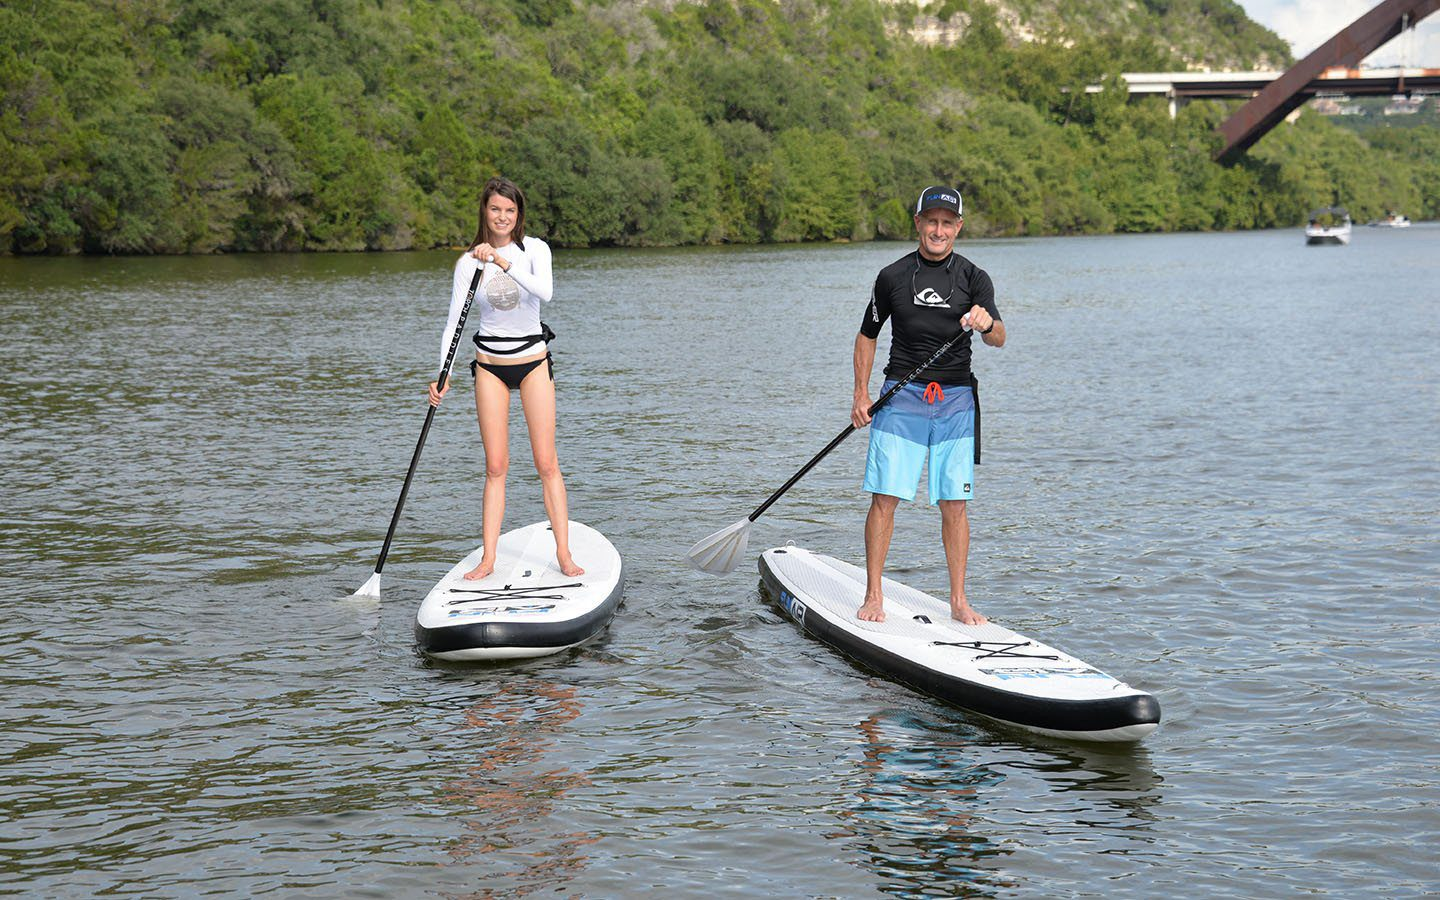 Inflatable SUP on a river